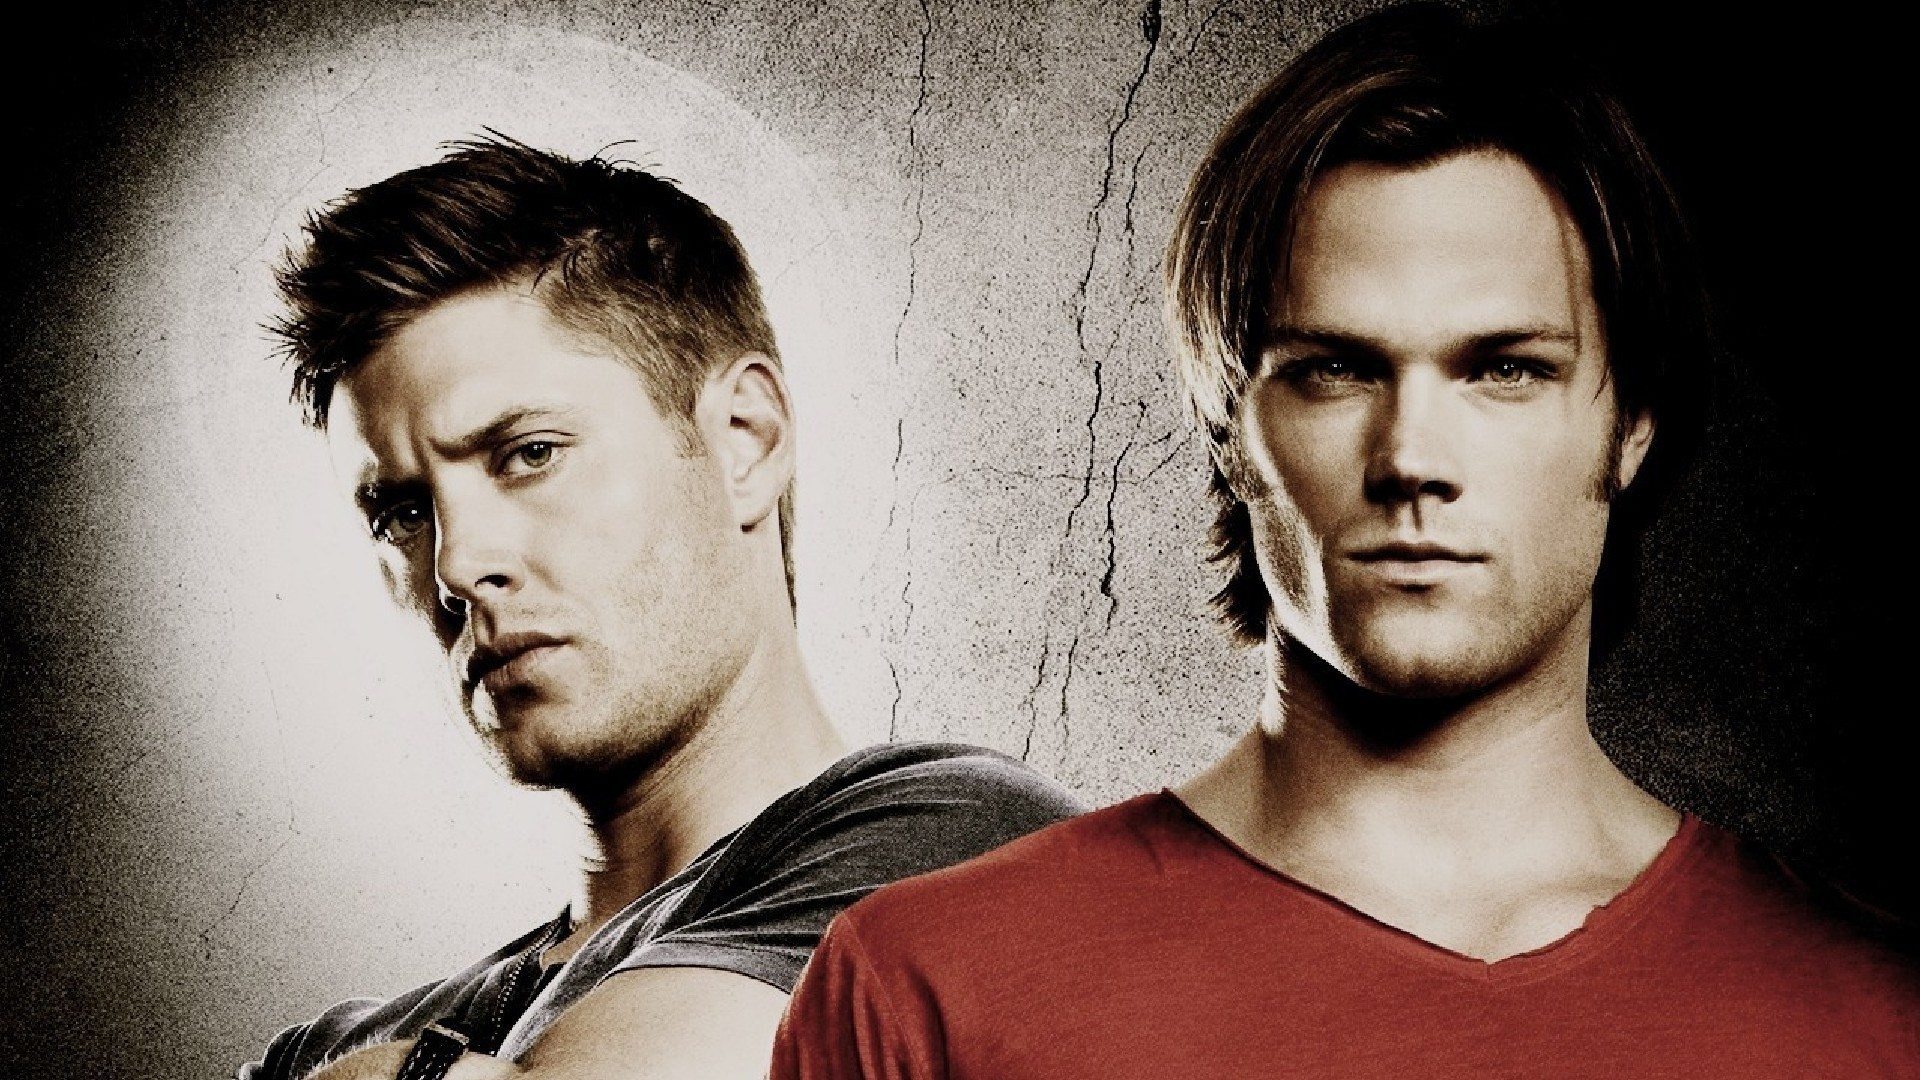 1920x1080 supernatural free picture backgrounds